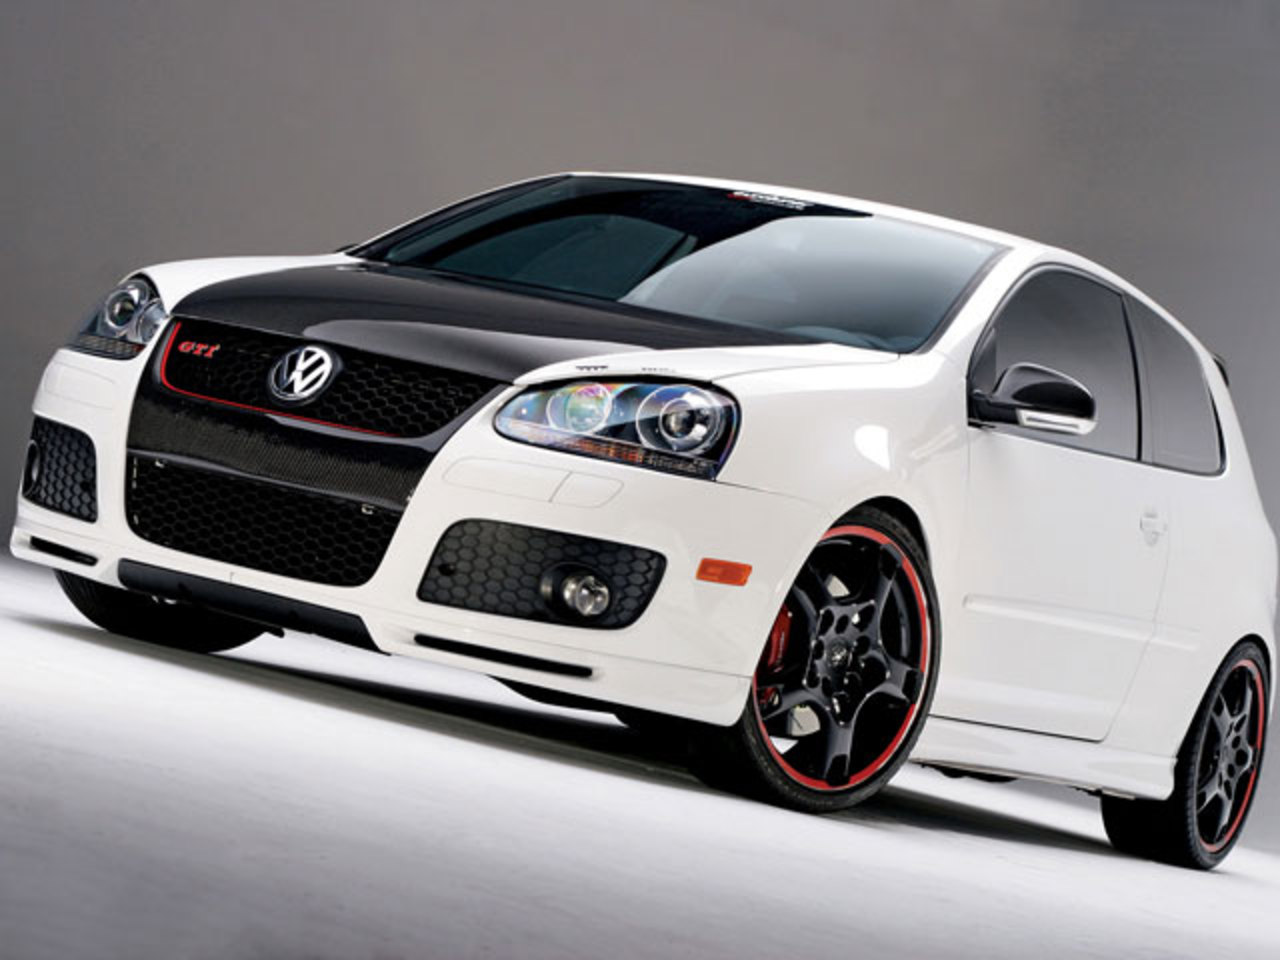 Volkswagen Golf GTi. View Download Wallpaper. 640x480. Comments